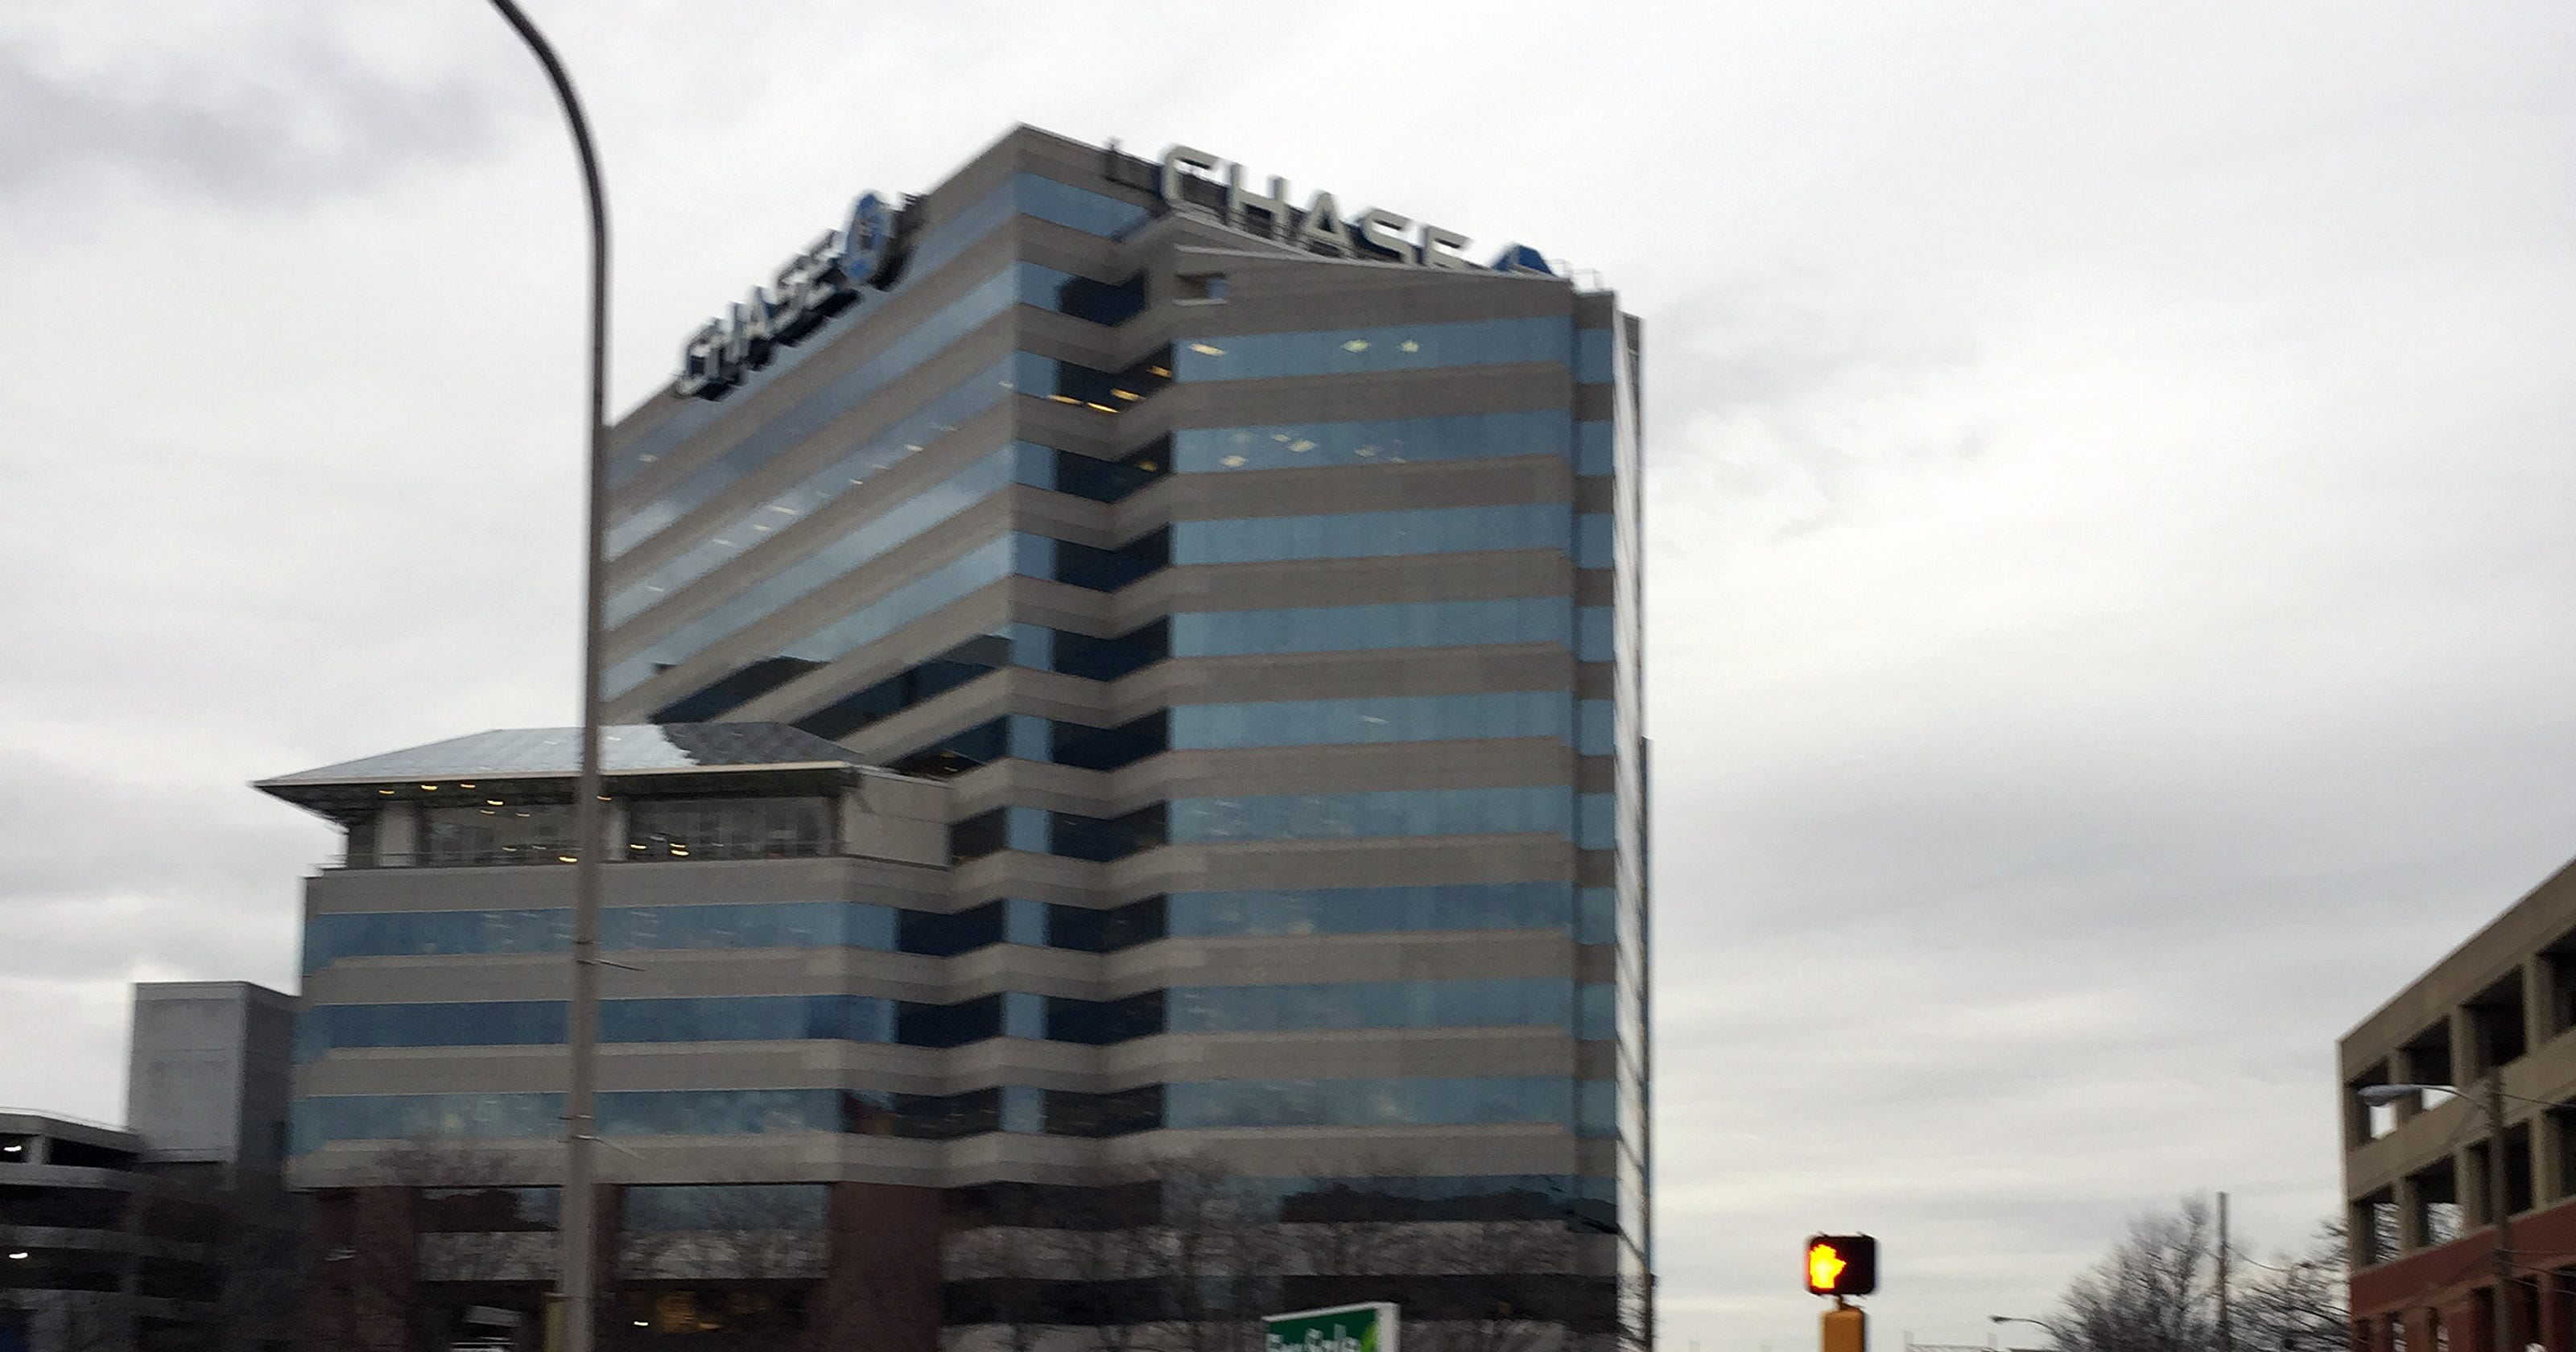 JPMorgan Chase pays $6.5M for Wilmington parking lot